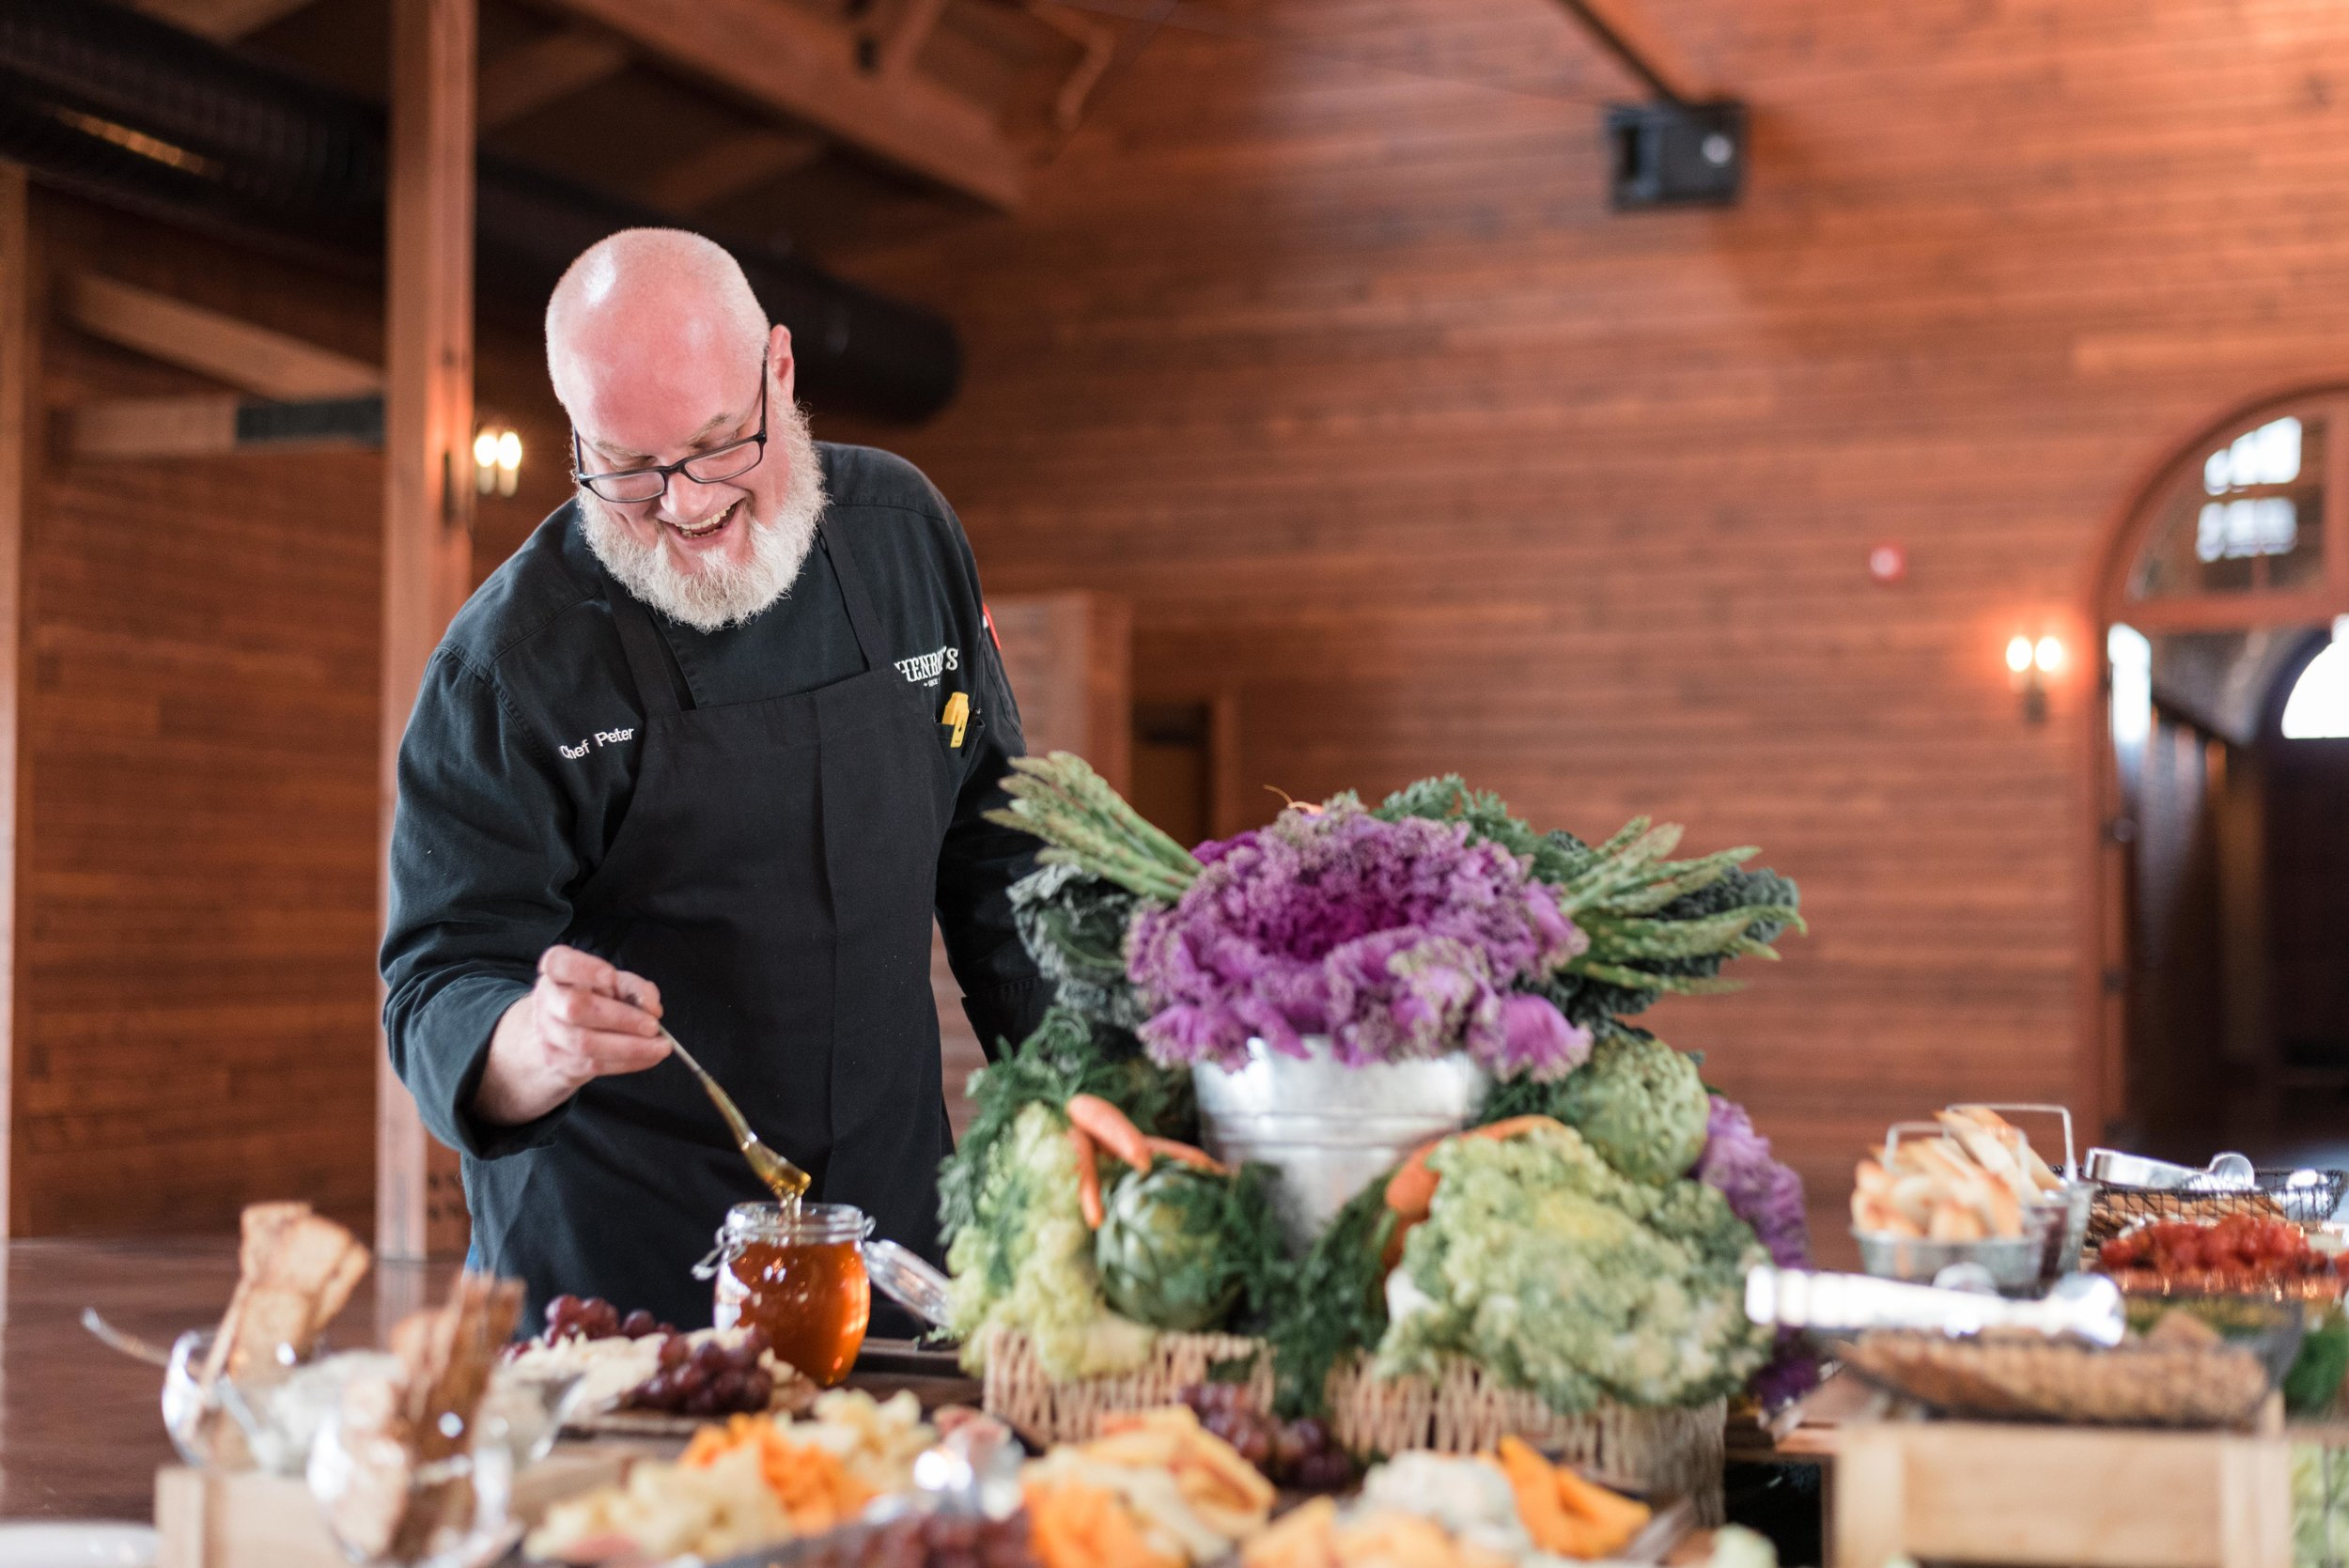 One of Henrici's Catering chefs prepares and serves the food to guests at The pavilion at Orchard Ridge Farms